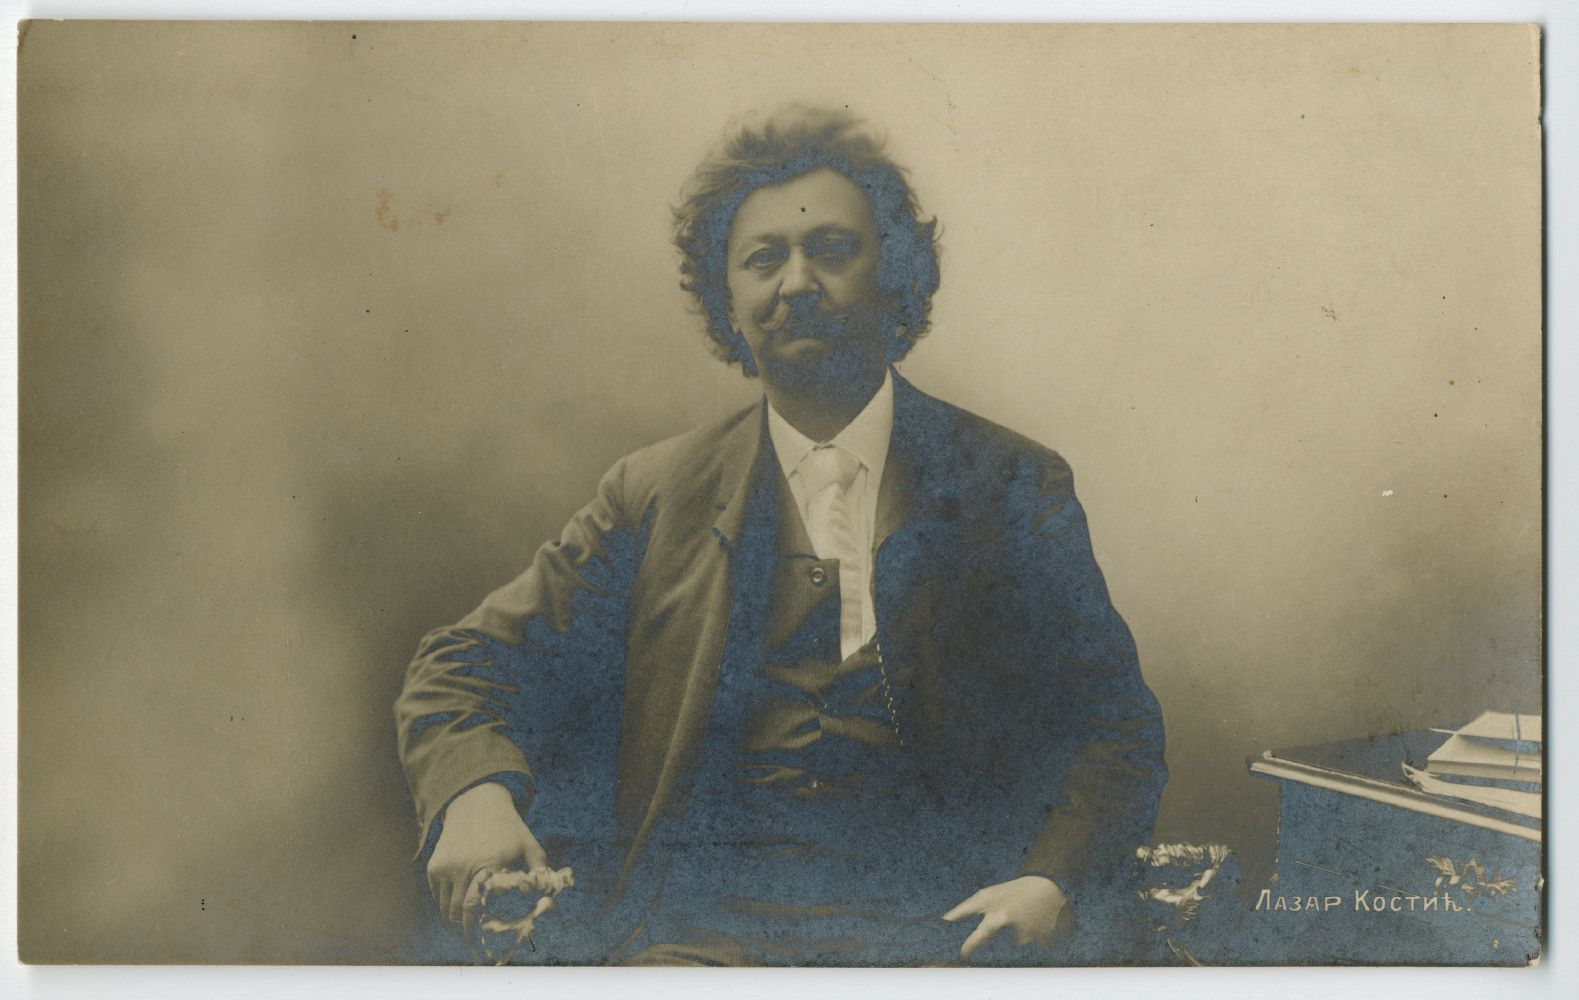 Studio portrait of poet Lazar Kostić, © Museum of Theater Art of Serbia